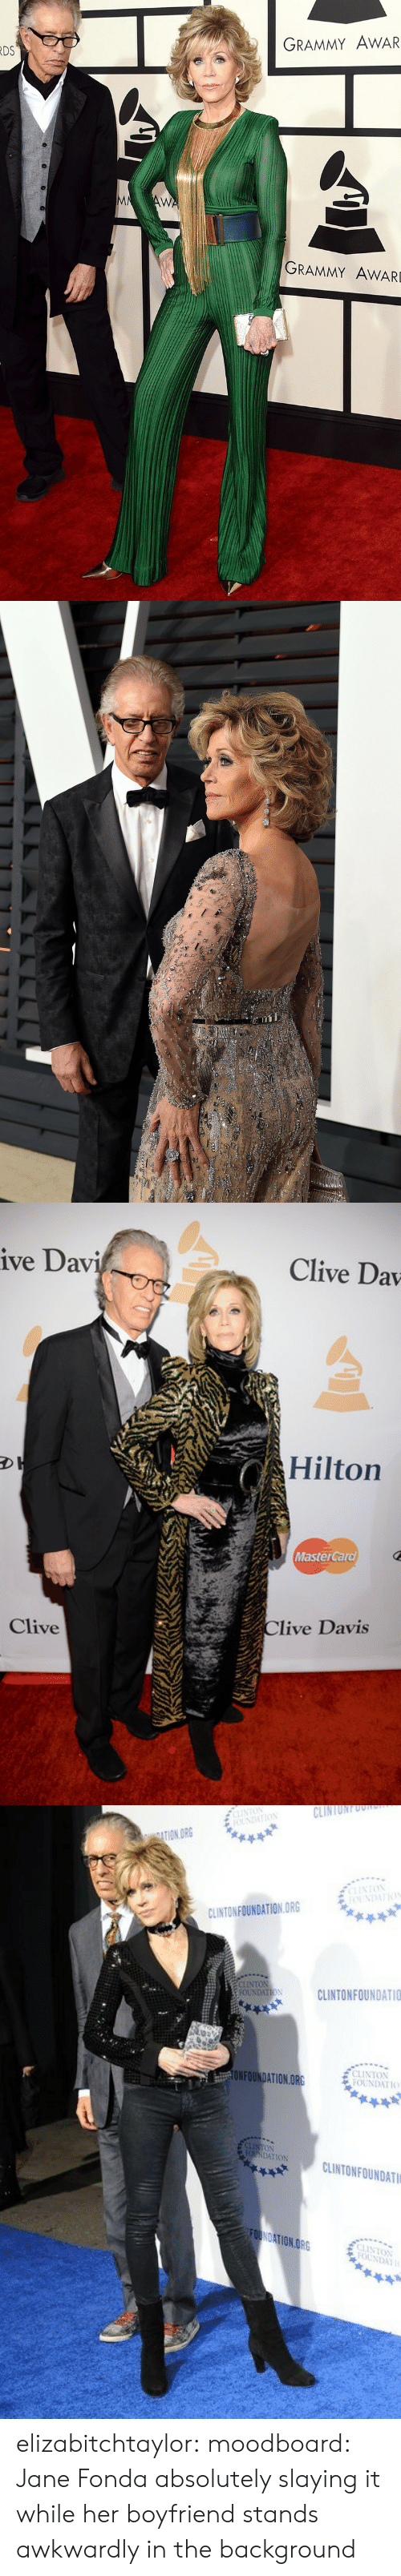 MasterCard: GRAMMY AWAR  DS  GRAMMY AWARD   ive Dav  Clive Dav  Hilton  MasterCard  Clive  live Davis   o CLINTONFOONO  FOUNDHTIO  TION ORG  IST(パ  CLINTON FOUNDATION ORG  FOUNDATIOSCLINTONFOUNDATIO  ECLINTON  NFOUNDATION.ORG  AtON CLINTONFOUNDATI  CLINTONFOUNDATI  FOt  NTON  OUNDA elizabitchtaylor: moodboard: Jane Fonda absolutely slaying it while her boyfriend stands awkwardly in the background